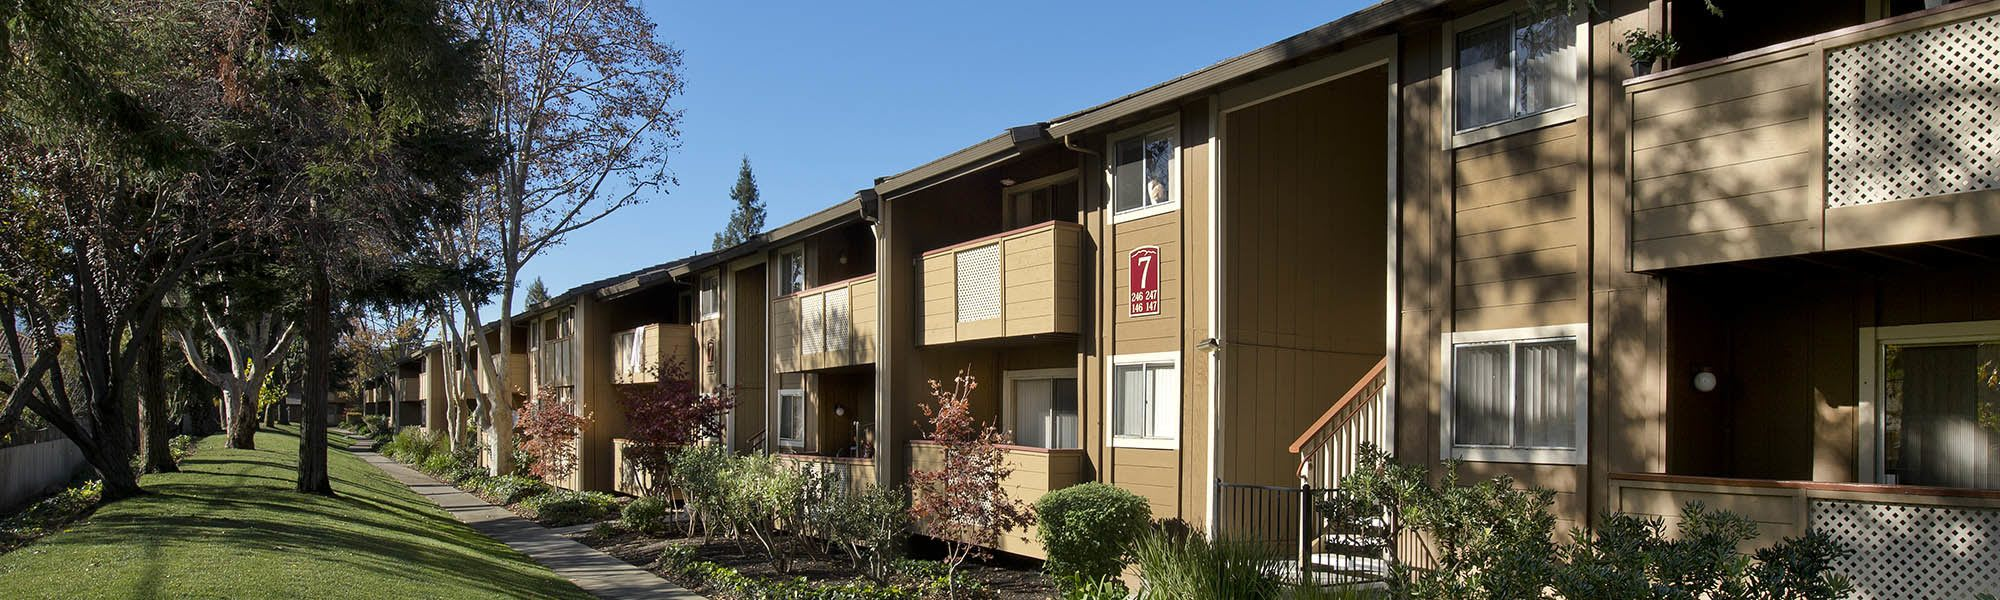 Learn about our exciting programs at Mill Springs Park Apartment Homes on our website